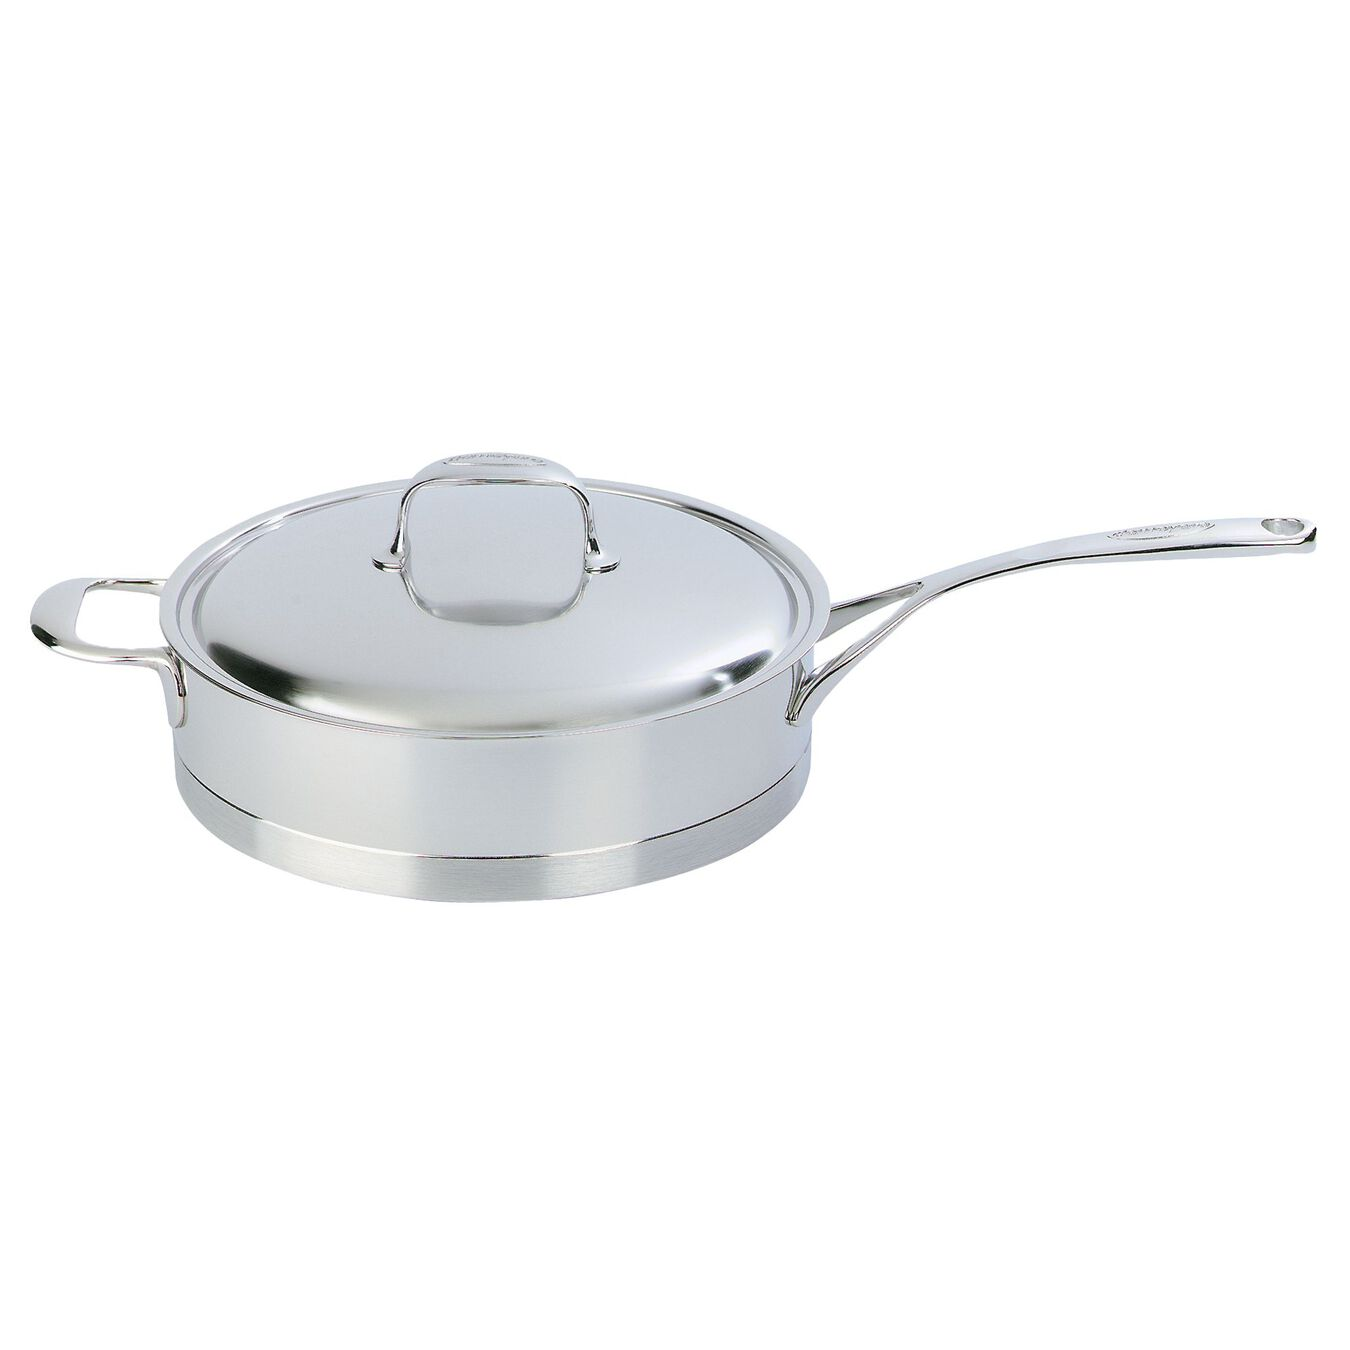 10 Piece 18/10 Stainless Steel Cookware set,,large 4